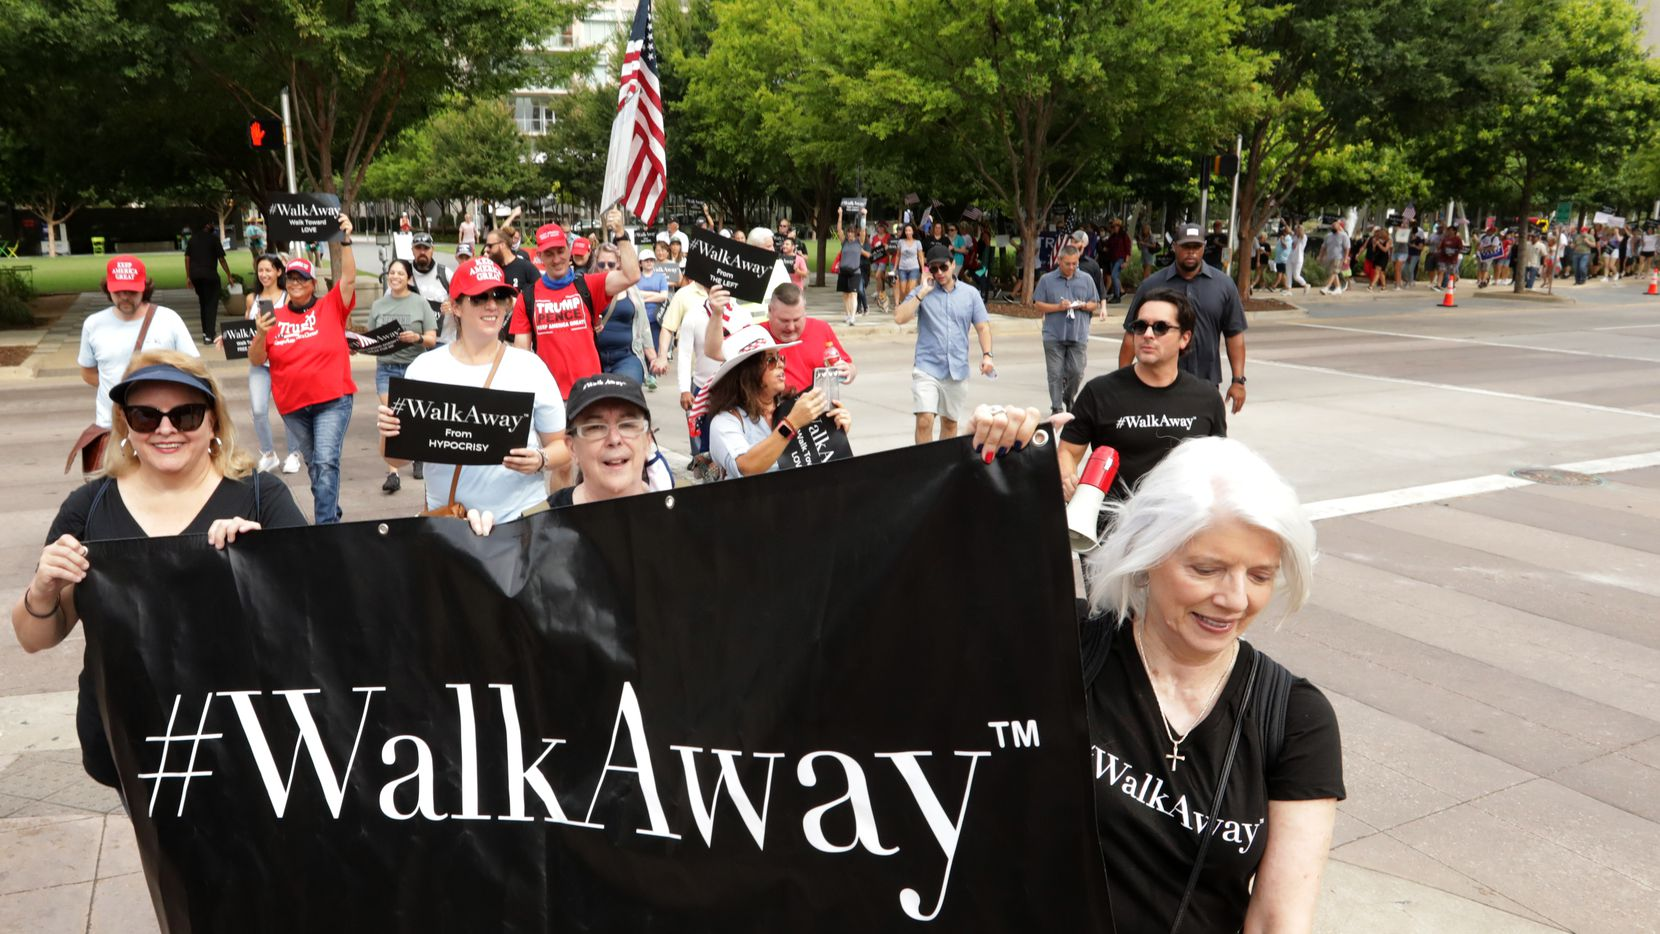 Several hundred people took part in Saturday's WalkAway Rescue America Rally in downtown Dallas on Saturday.